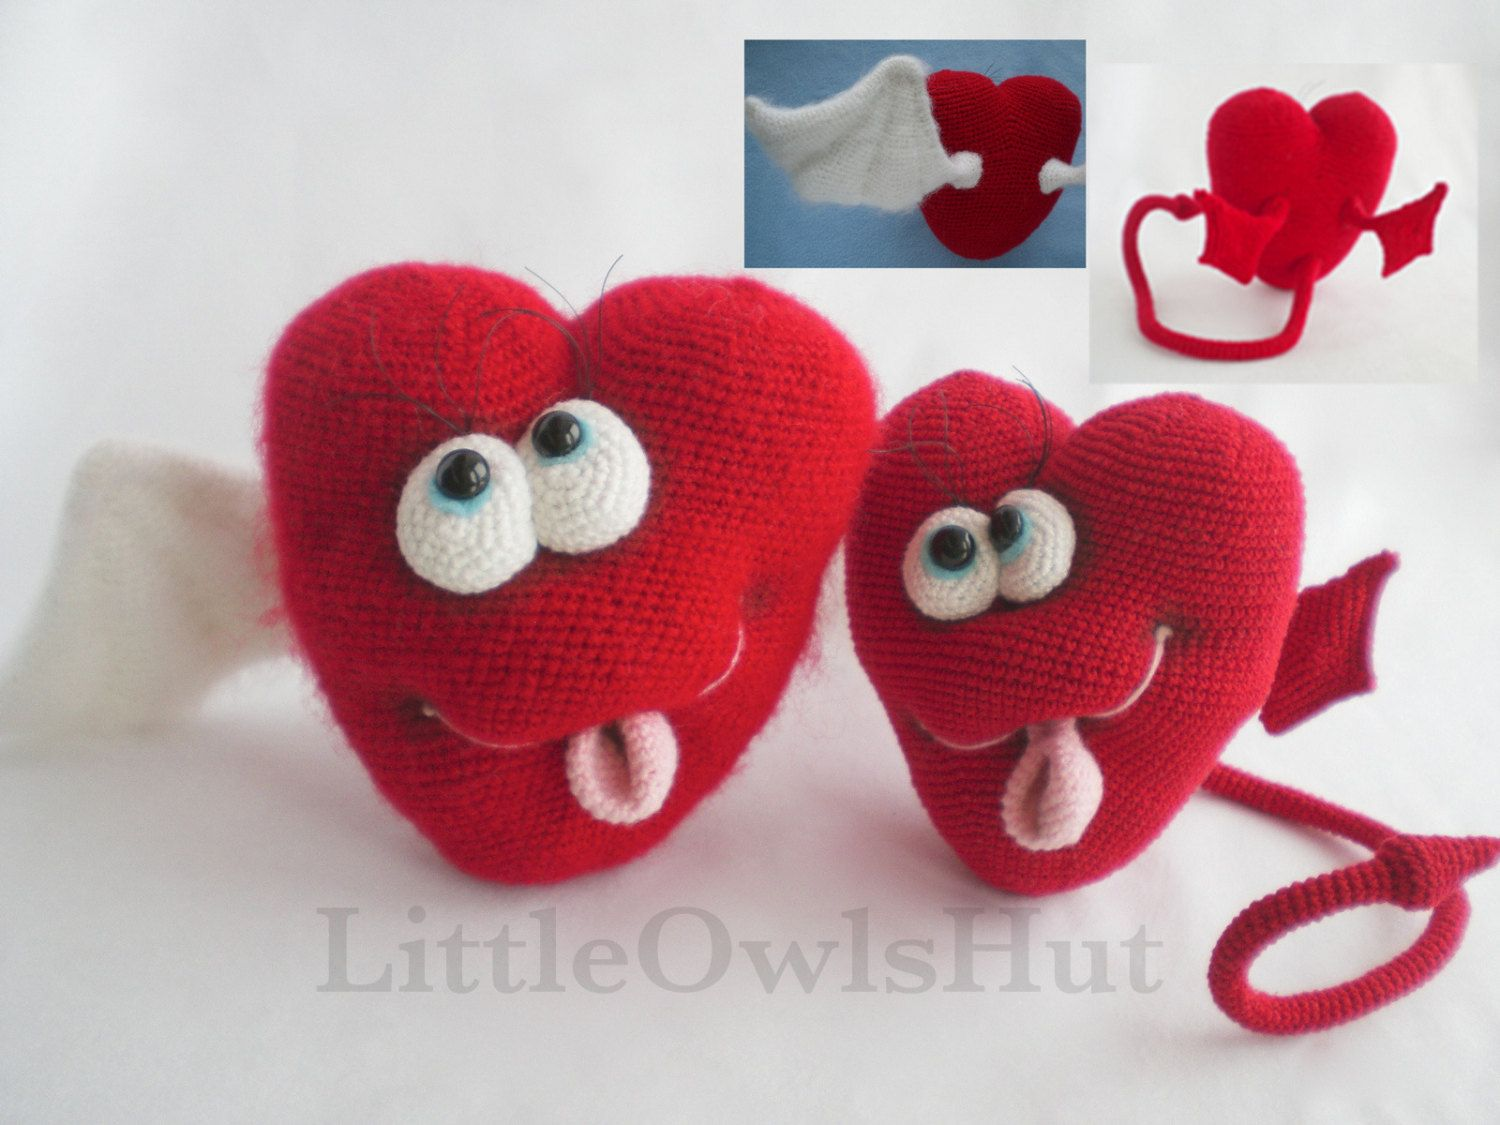 021 heart toy with wire frame amigurumi crochet by littleowlshut 021 heart toy with wire frame amigurumi crochet by littleowlshut bankloansurffo Gallery